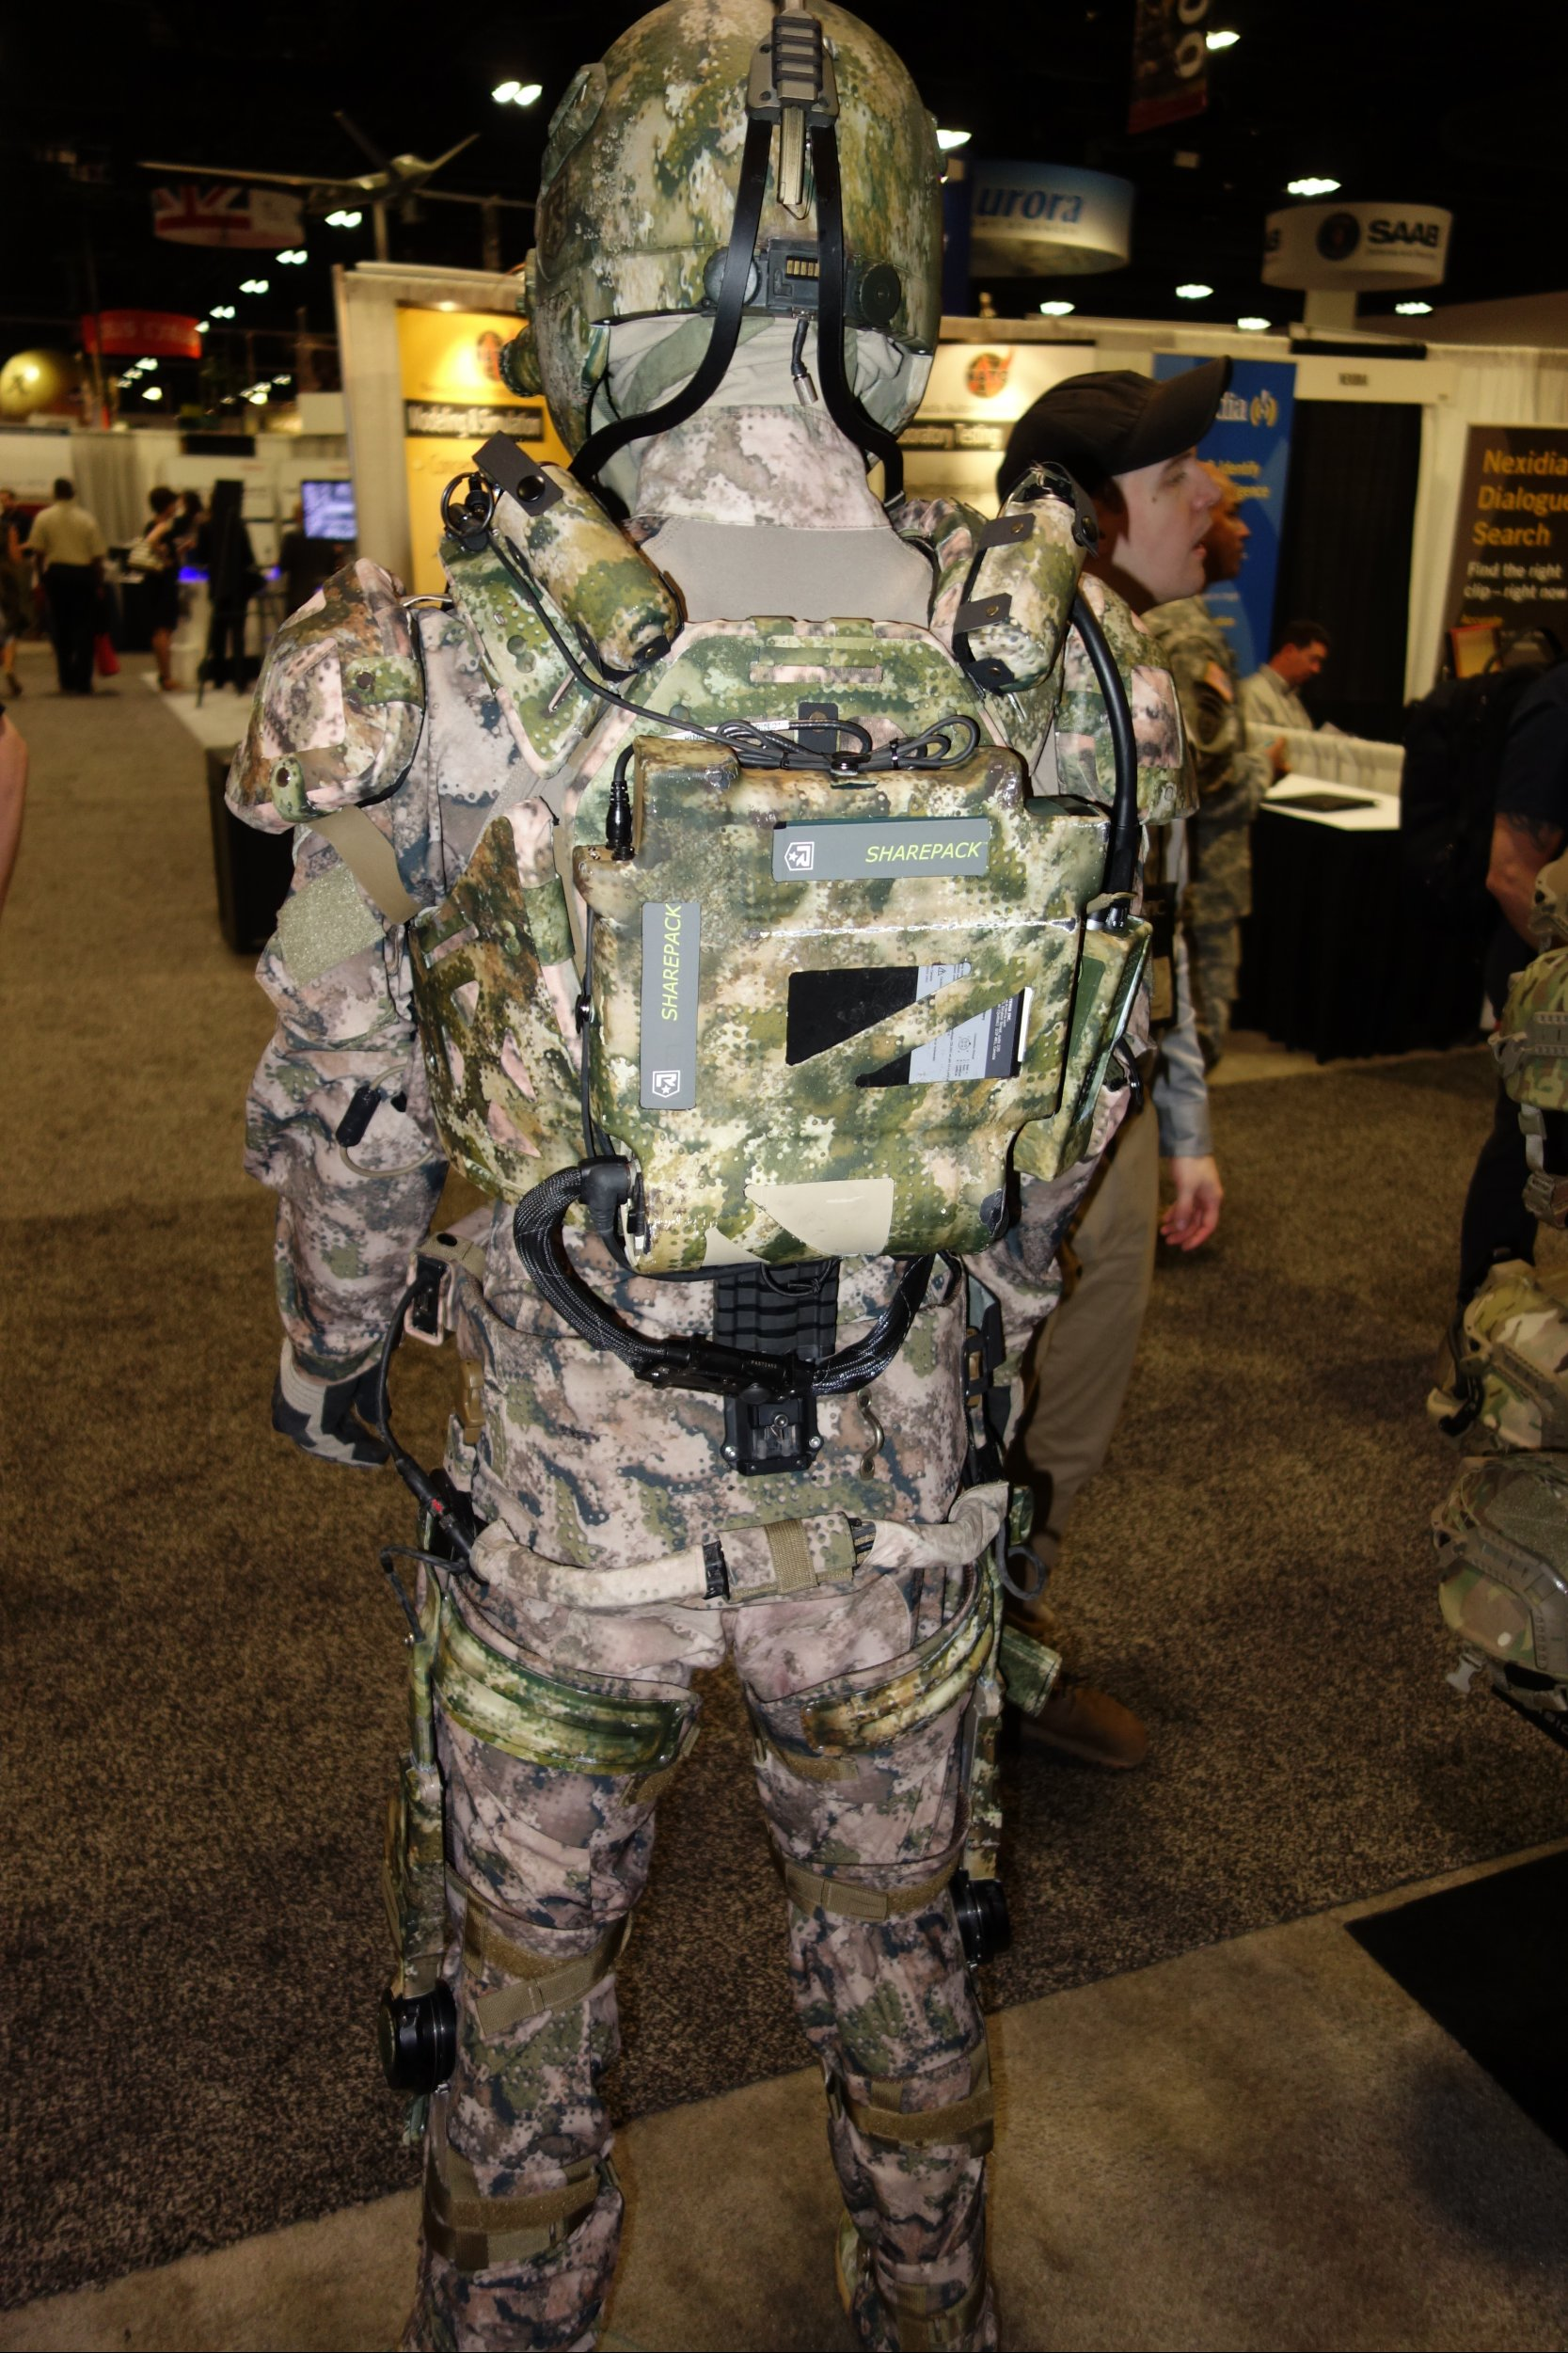 http://www.defensereview.com/wp-content/uploads/2016/09/Revision_Talos_Tactical_Assult_Light_Operator_Suit_Future_Soldier_Demonstrator_Mock-Up_SOFIC_Special_Operations_Forces_Industry_Conference_2015_David_Crane_DefenseReview.com_DR_25.jpg